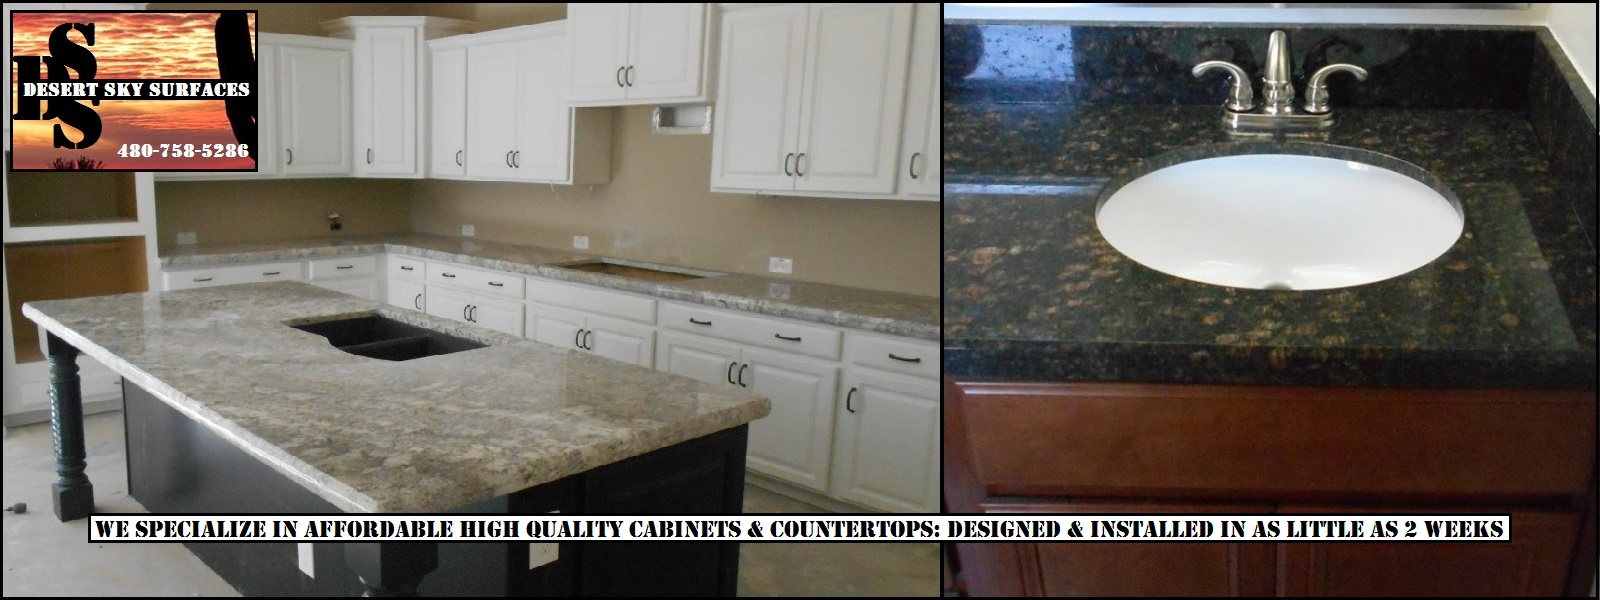 From The Kitchen To The Bath, We Design And Install Affordable Quality  Cabinets U0026 Countertops Valley Wide